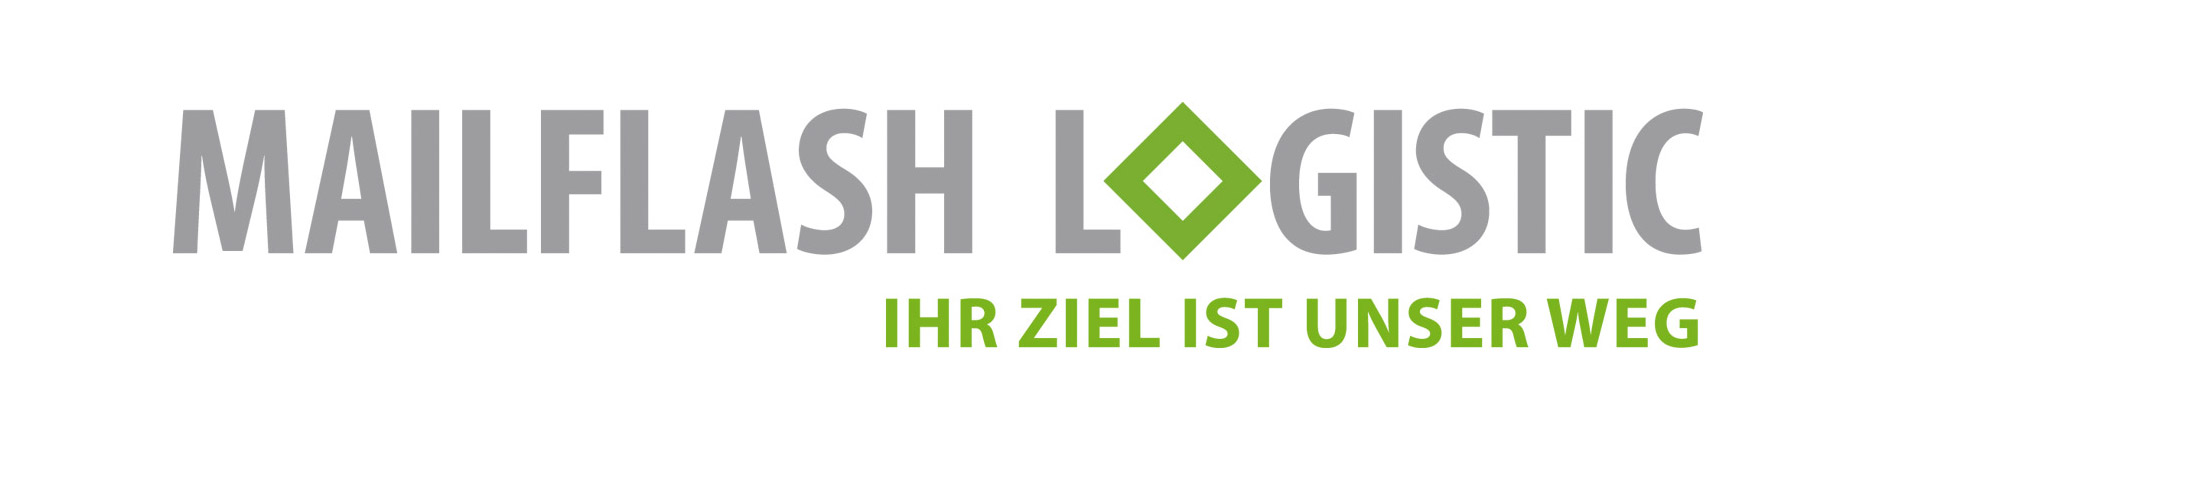 MAILFLASH LOGISTIC Logo